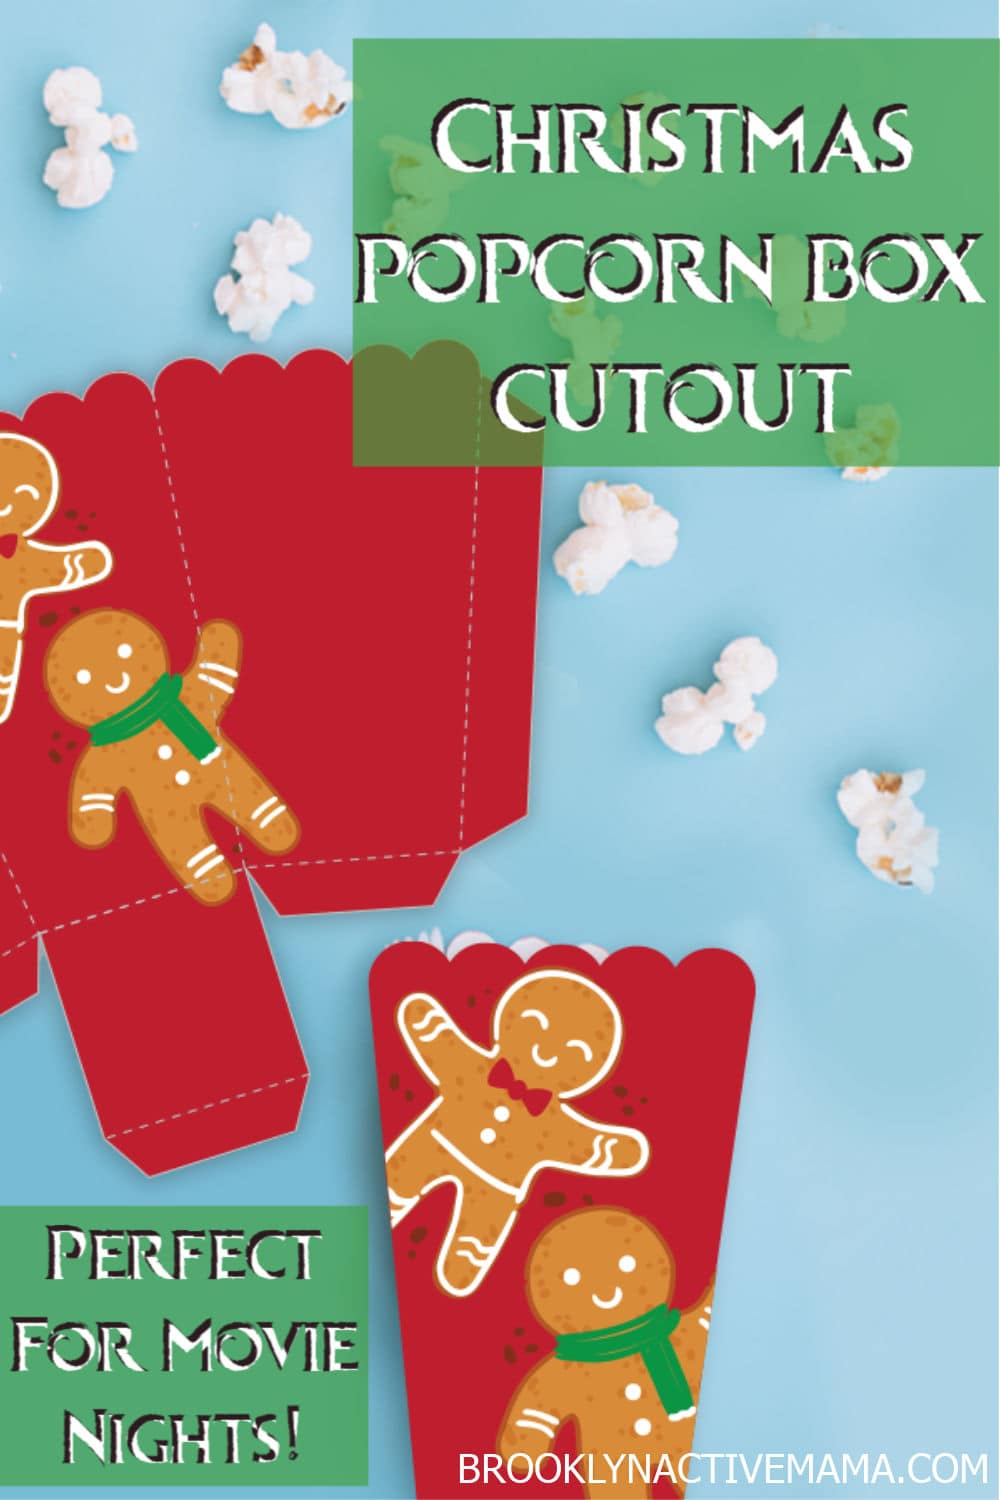 Christmas movies are a delight for kids all over the world. Find out 10 of the best Christmas movies for kids on Netflix you can watch this holiday season. Plus a fun popcorn Christmas gingerbread printable cutout that you can use for popcorn or any other Christmas treat! #Netflix #Christmasmovies #ChristmasPrintable